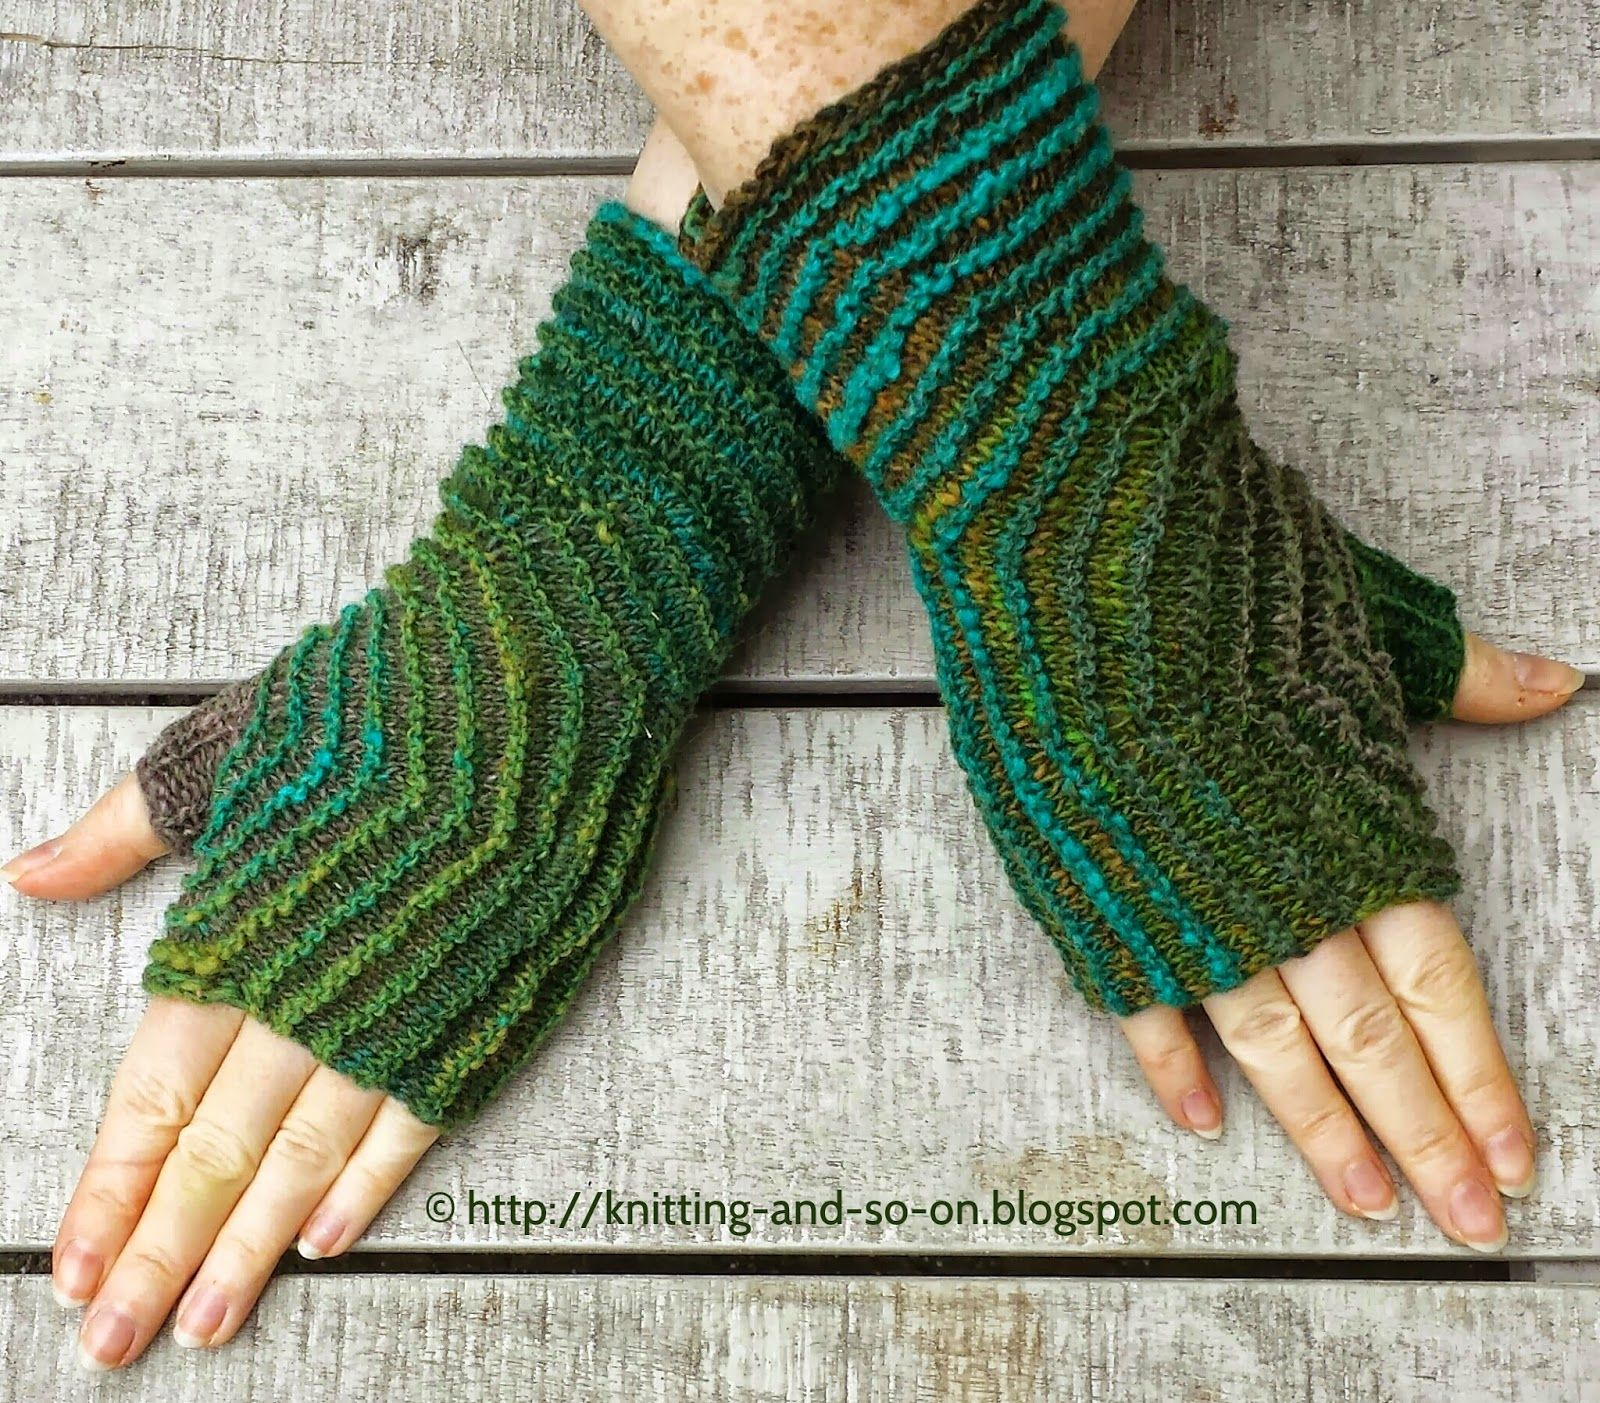 Free Knitting Pattern: Hexagon Mitts in Two Colors | Knitting ...